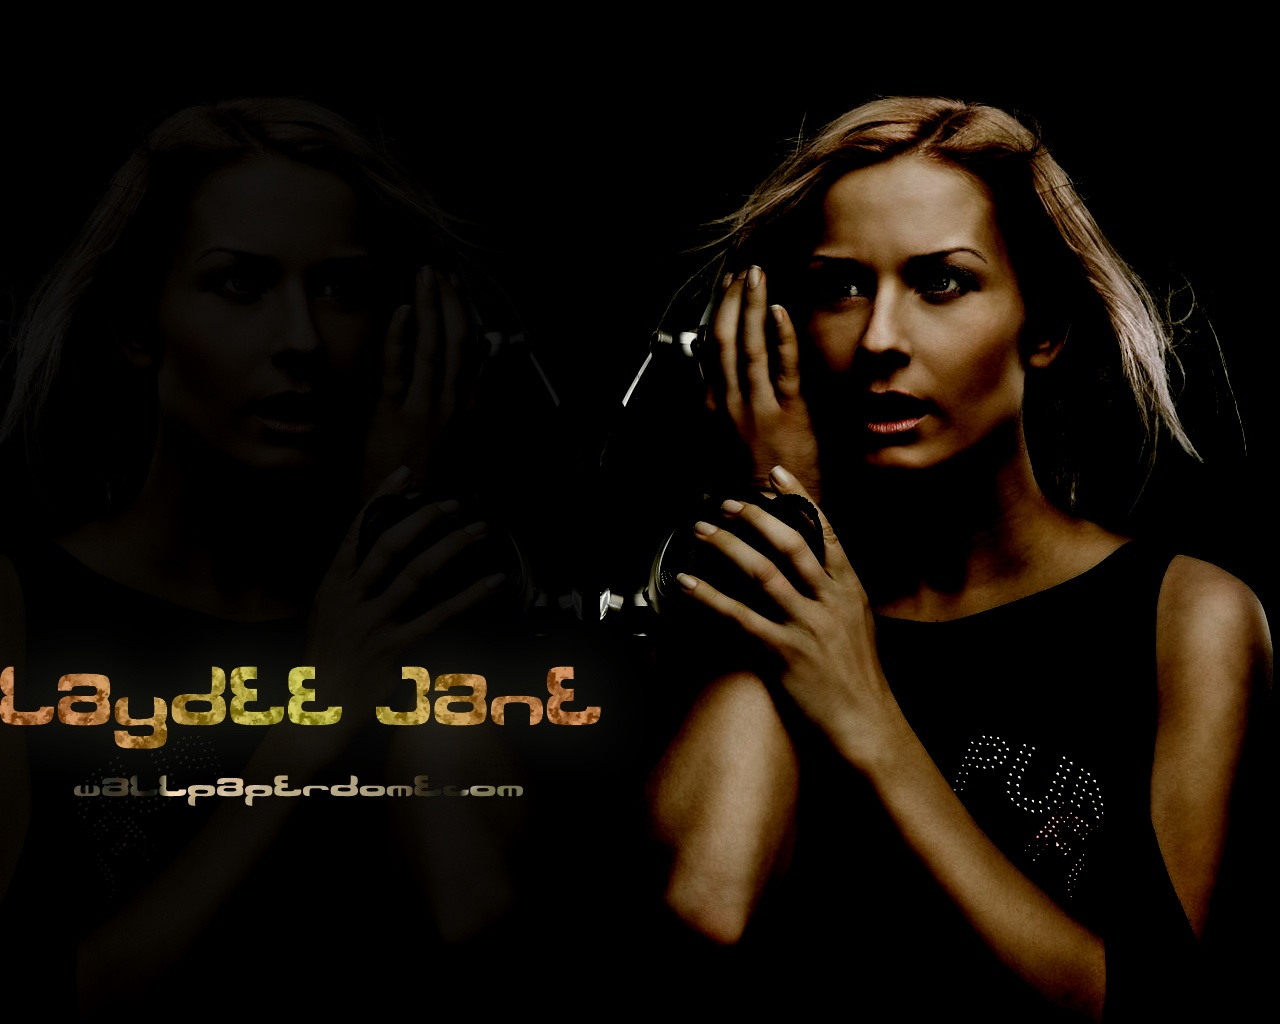 Dj Laydee Jane HD and Wide Wallpapers